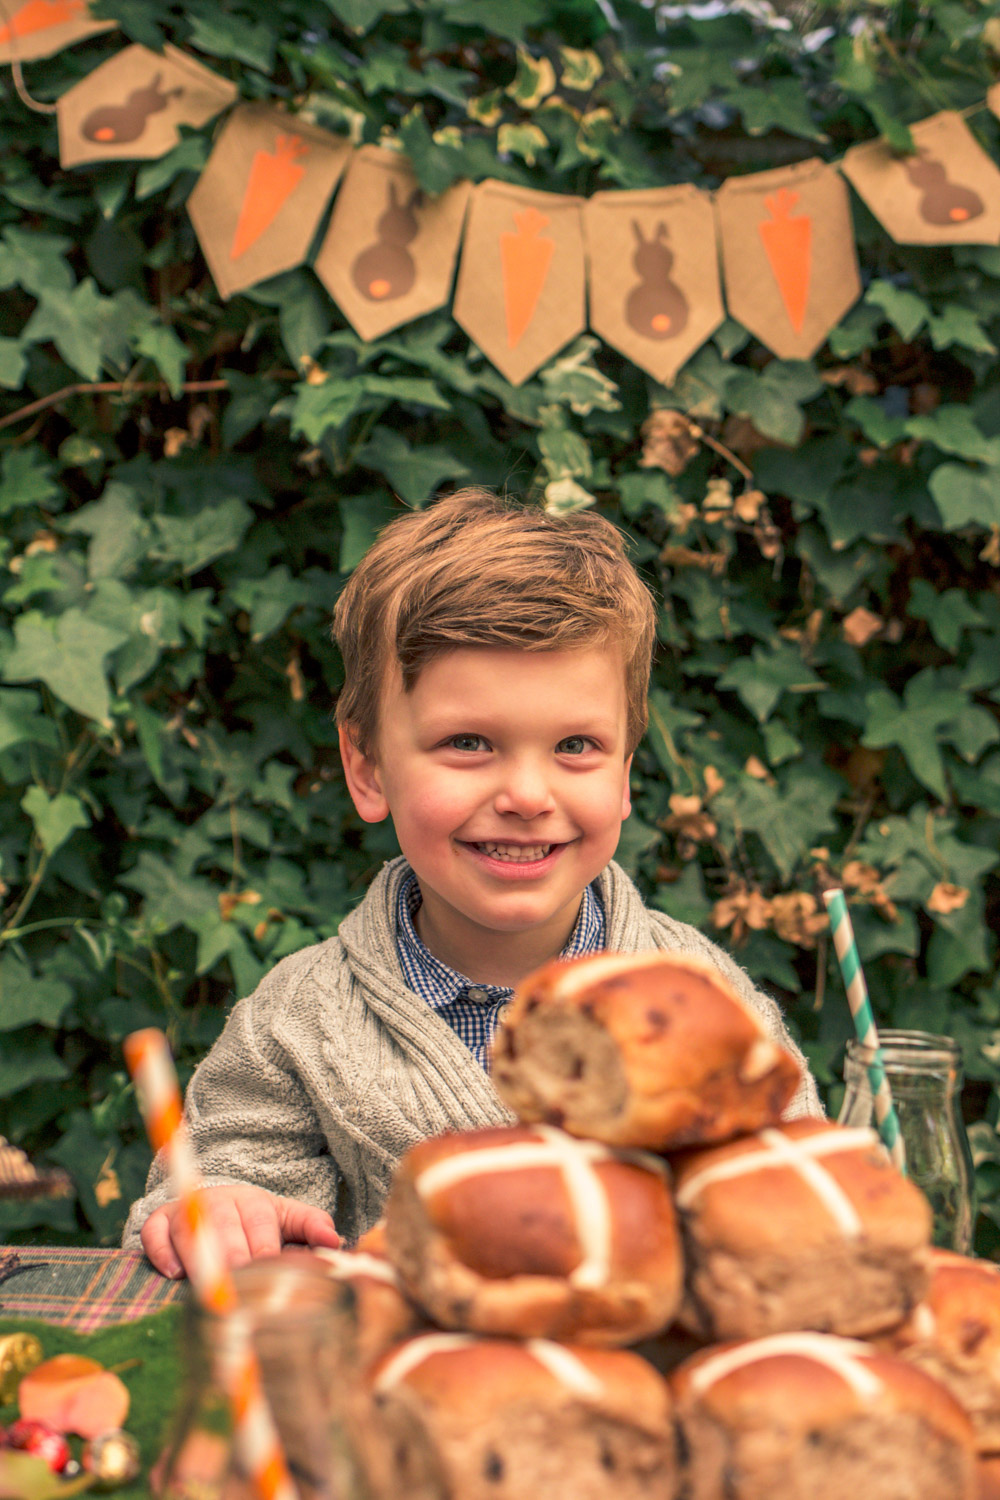 Little boy eating hot cross buns at kids party table at Autumn easter egg hunt